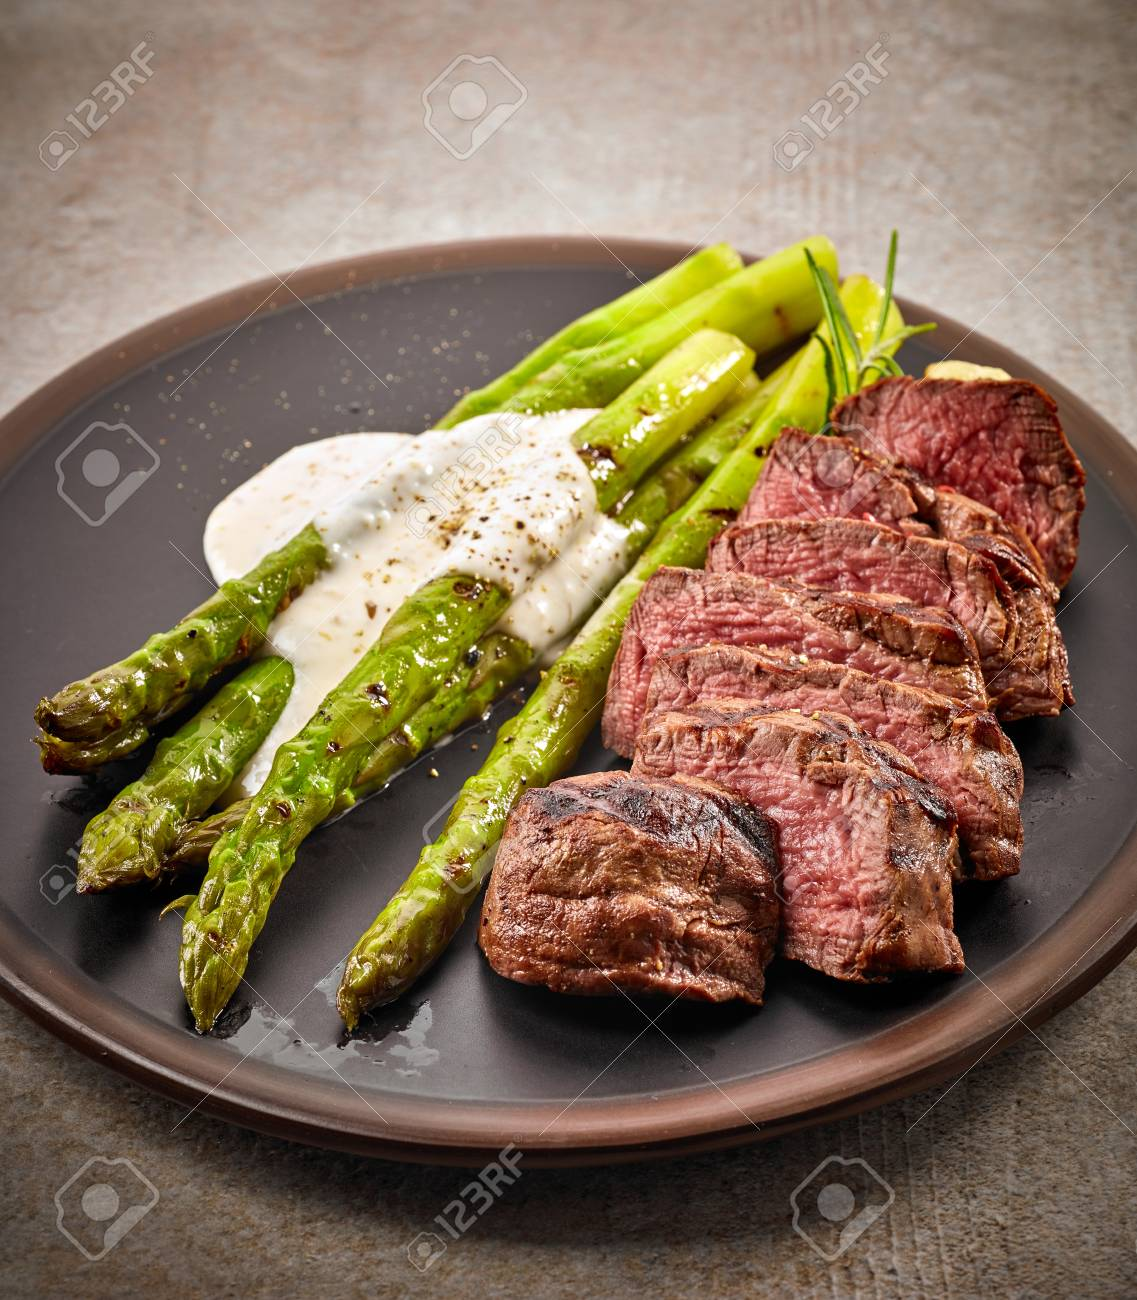 Portion Of Sliced Beef Steak And Asparagus On Dark Plate Stock Photo Picture And Royalty Free Image Image 58394241